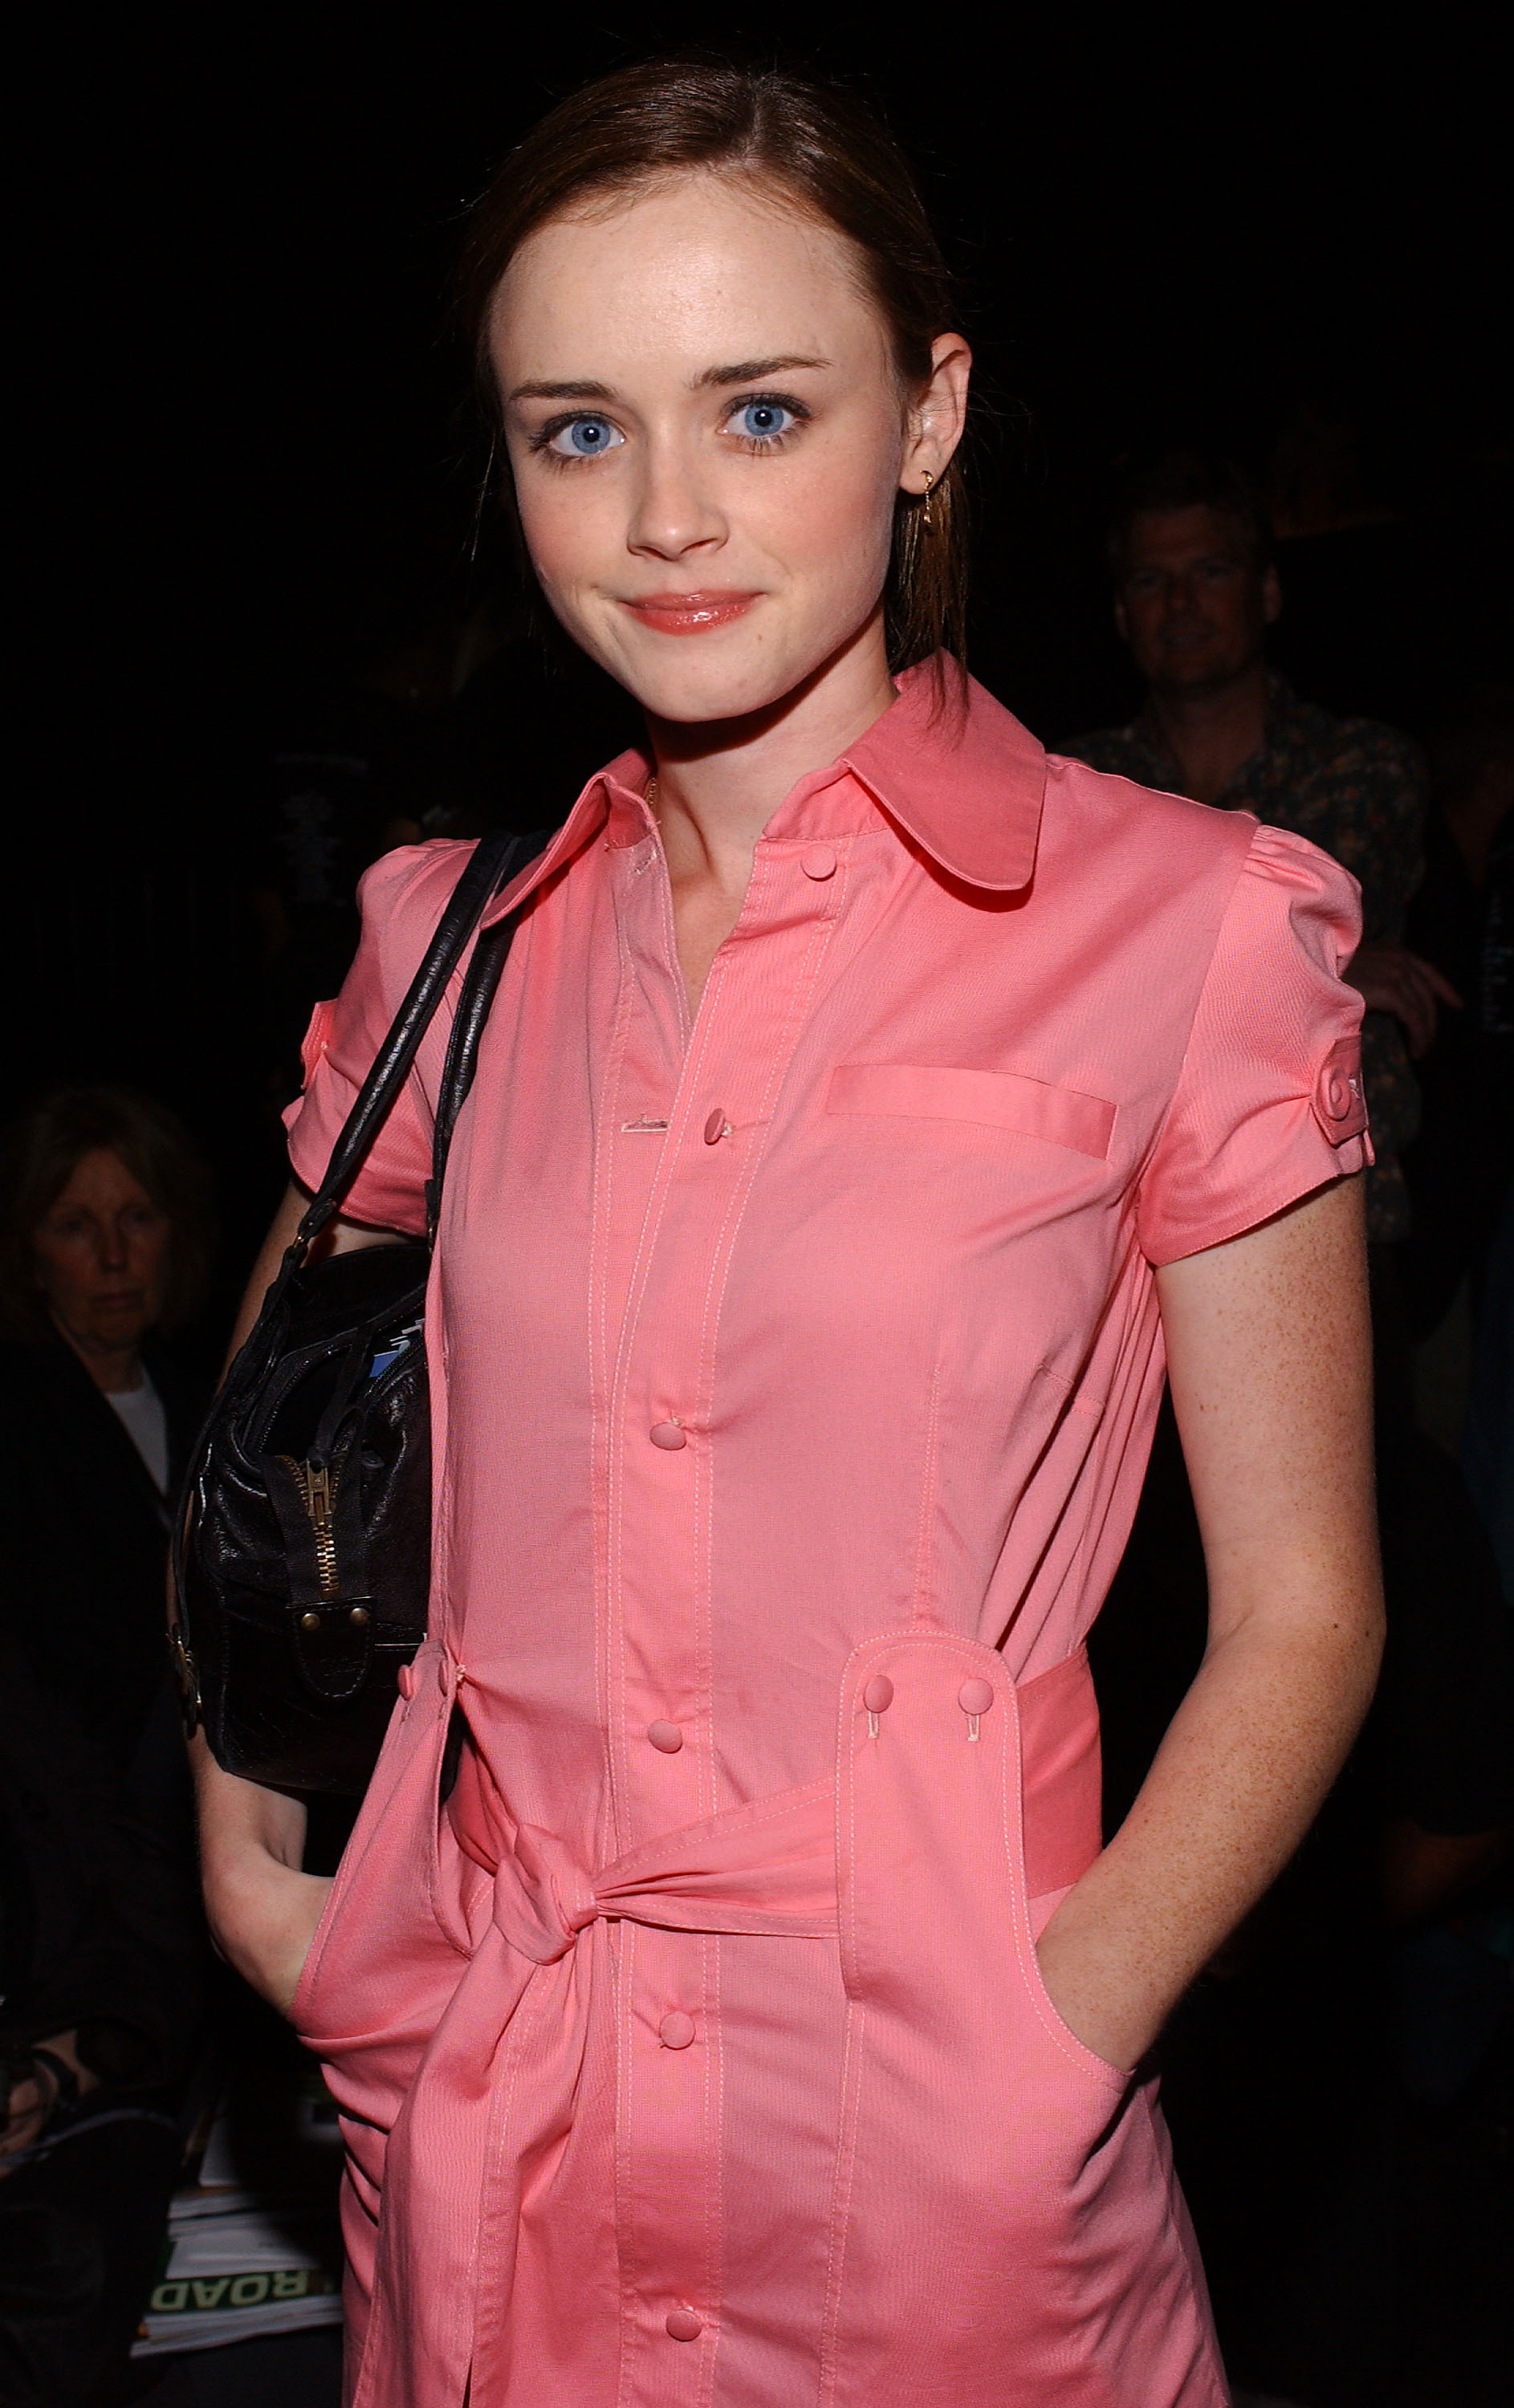 Alexis Bledel is new favourite to play Anastasia Steele in Fifty Shades Of Grey